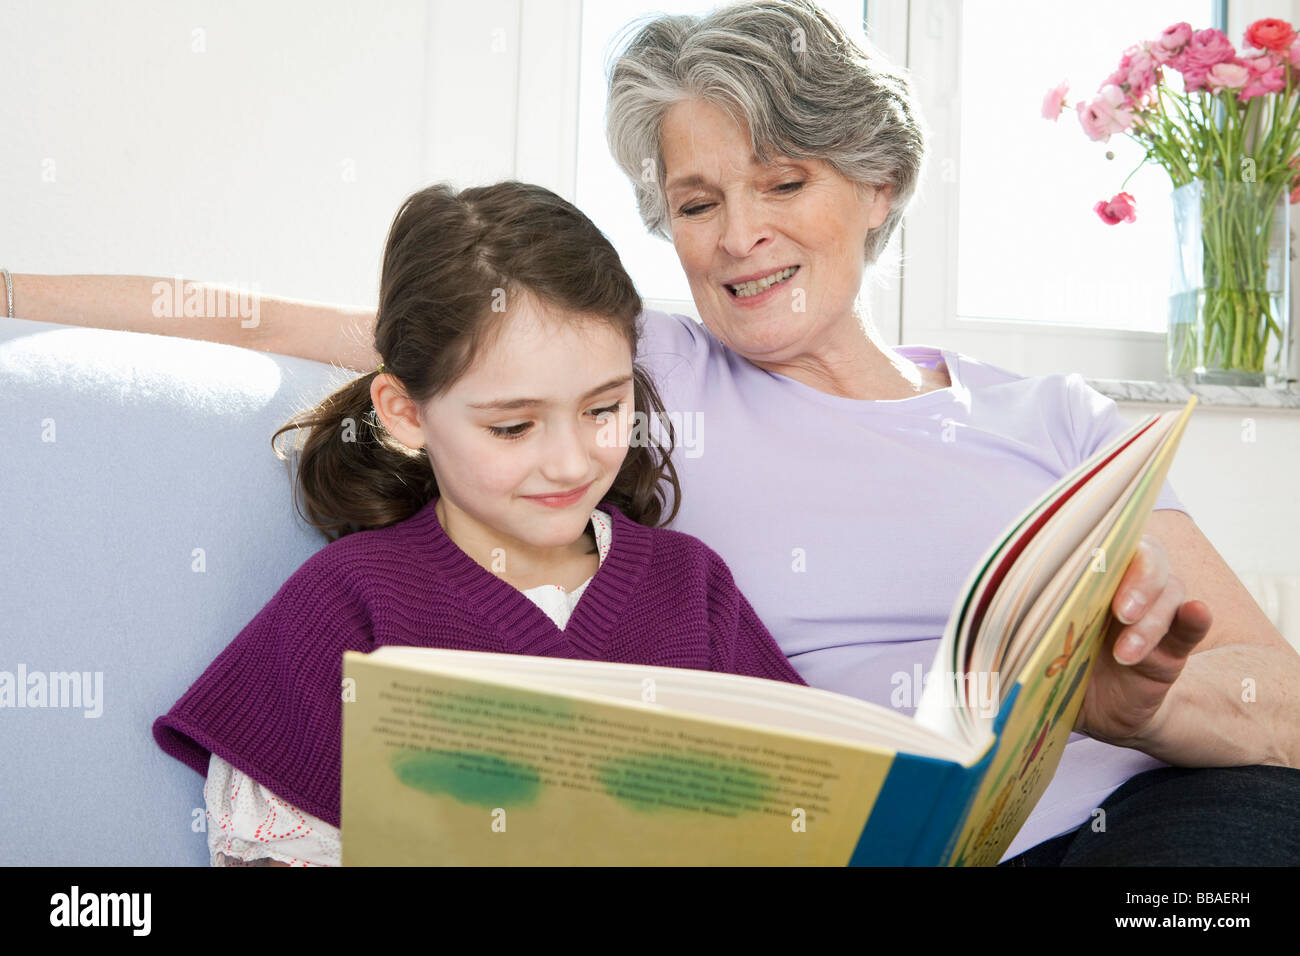 Senior Female Reading Children Stock Photos Amp Senior Female Reading Children Stock Images